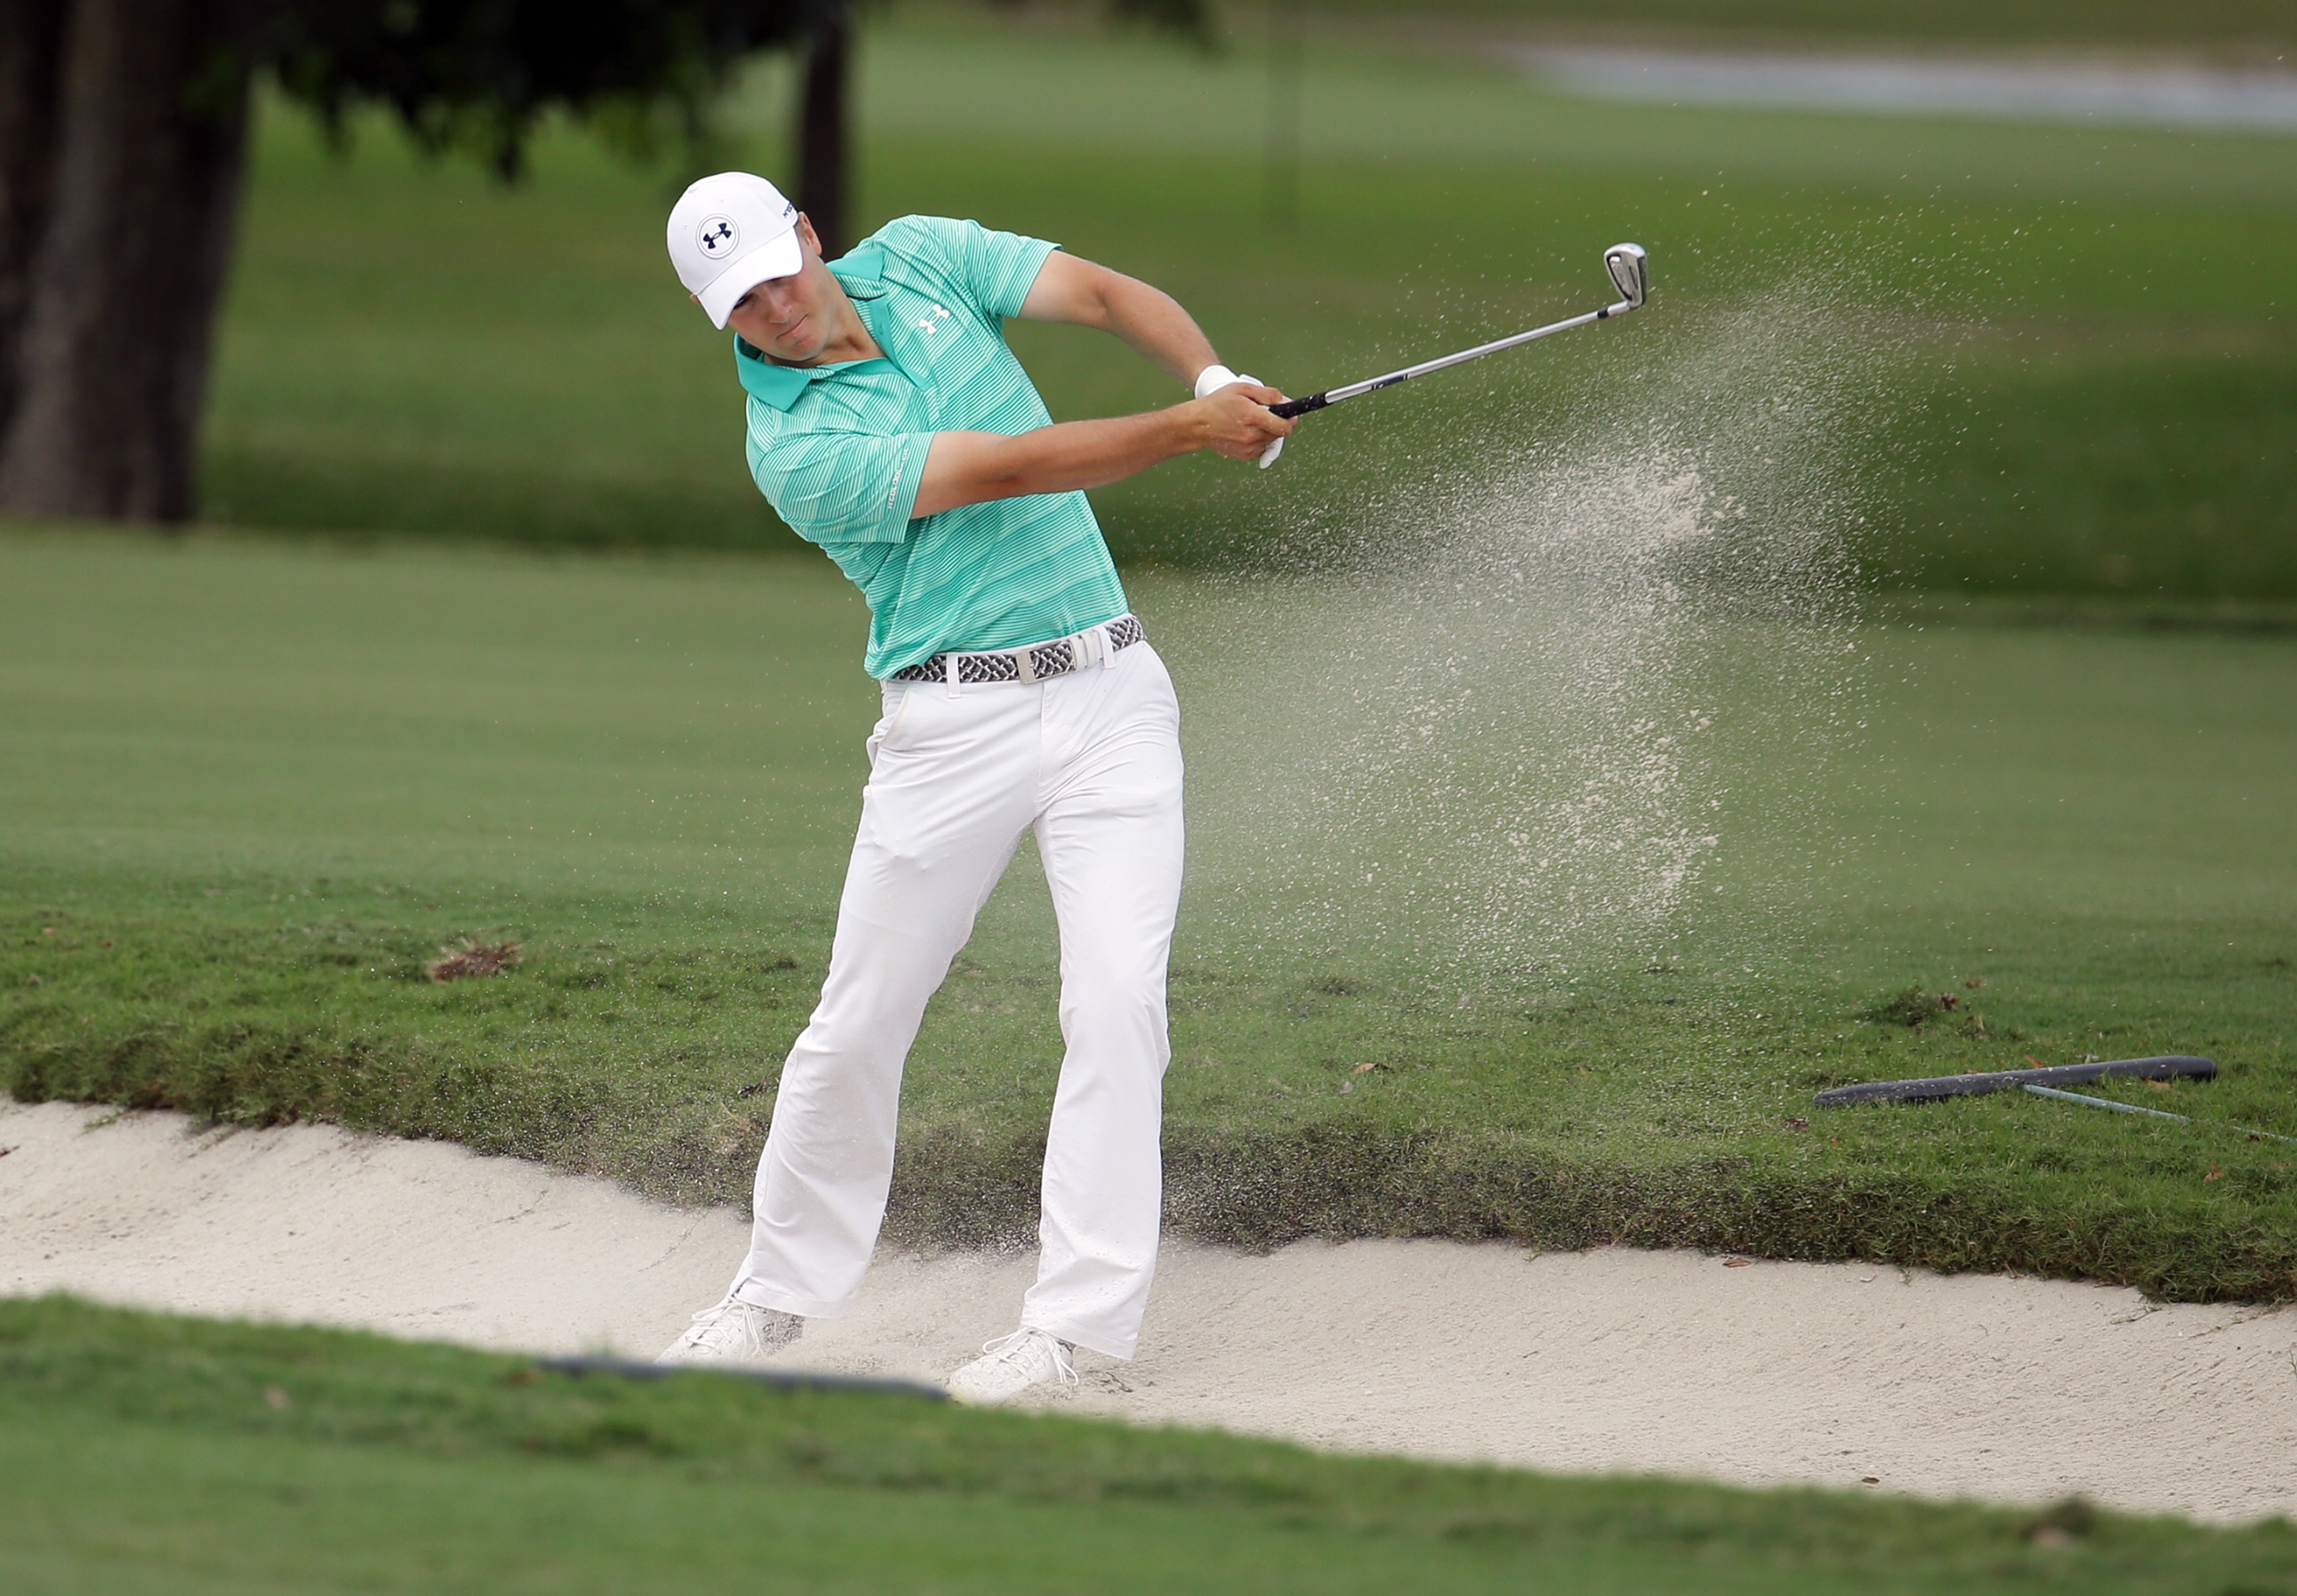 Jordan Spieth hits from the 11th fairway during the first round of the Cadillac Championship golf tournament, Thursday, March 3, 2016 in Doral, Fla. (AP Photo/Lynne Sladky)